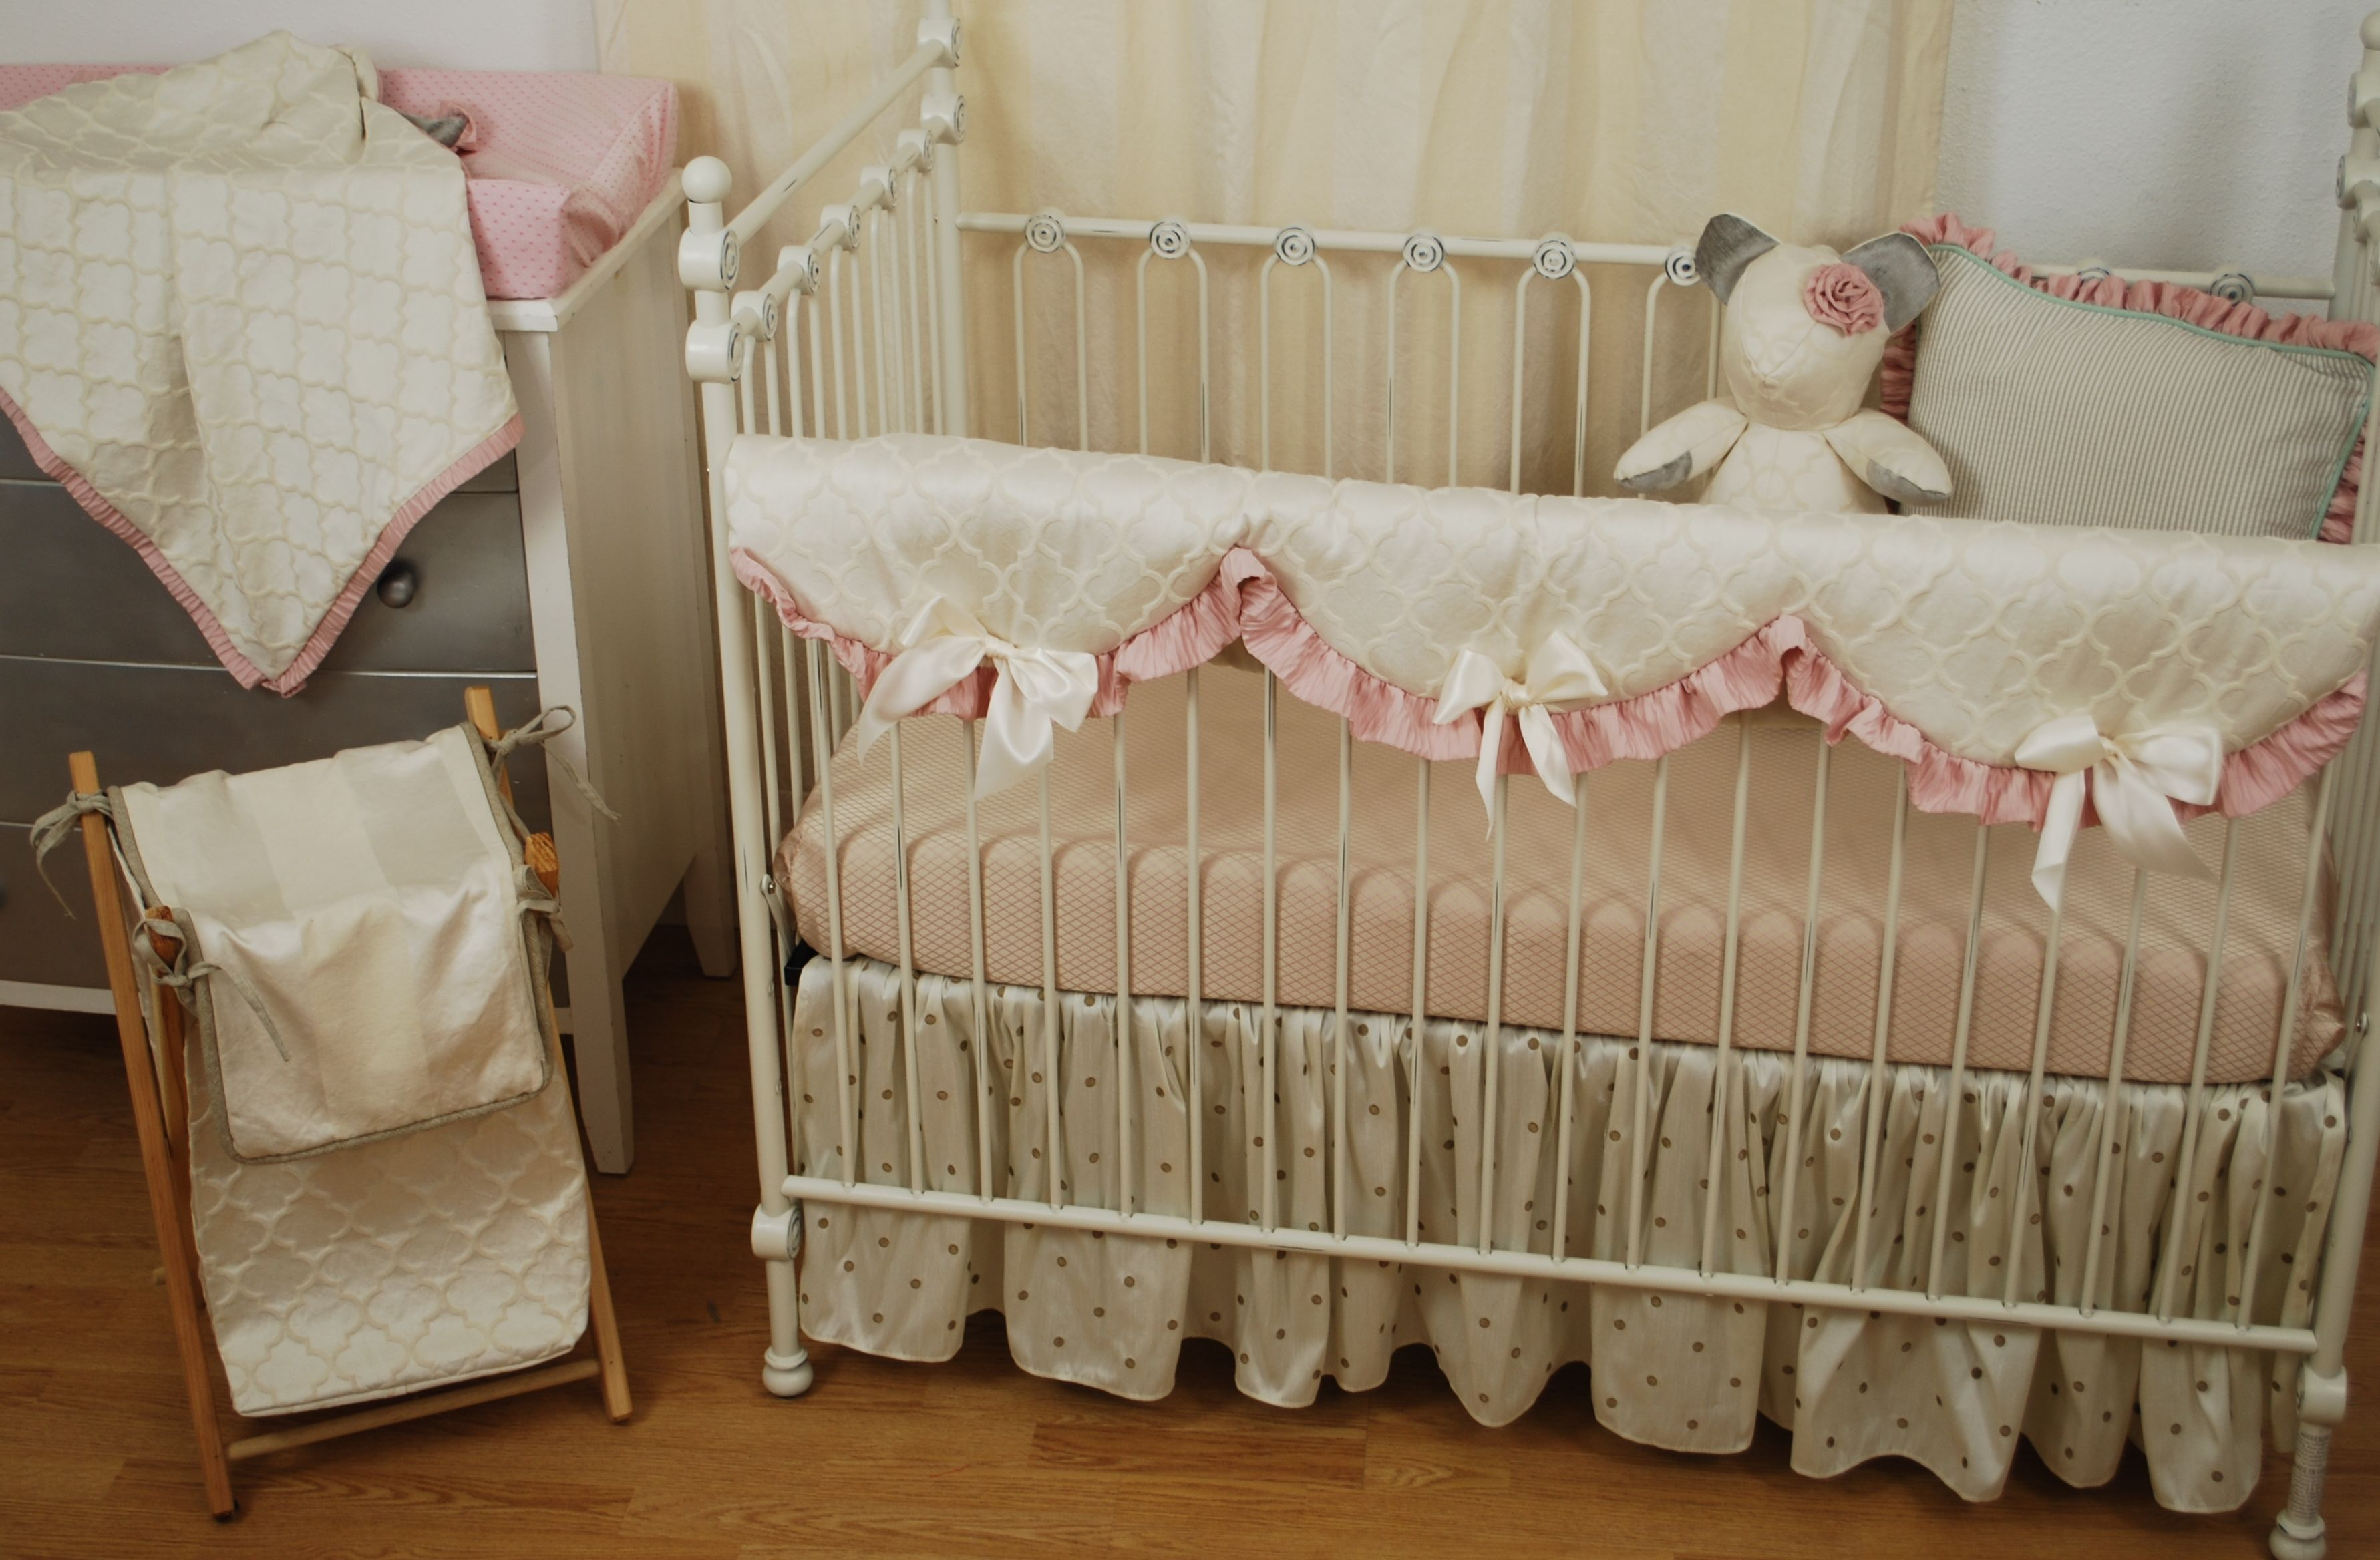 hack swing bedding clearance sets fur uk awesome breathtaking rug copper chandelier cream set baby crib rocking cribs